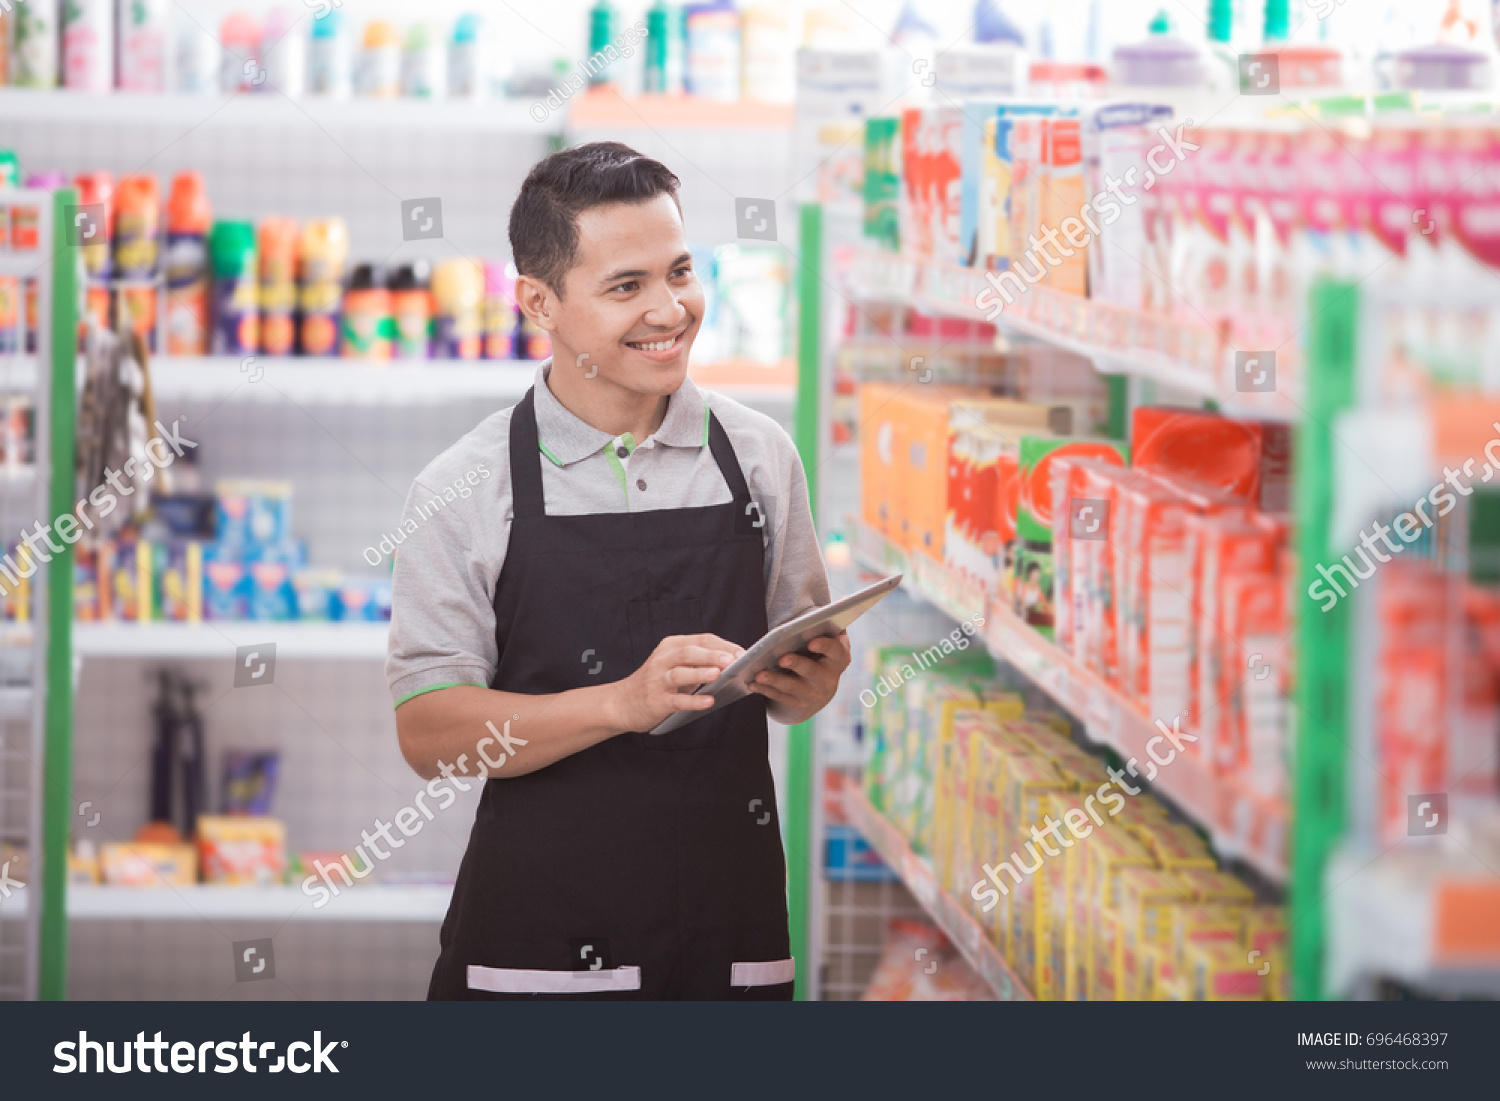 stock-photo-portrait-of-asian-male-staff-checking-the-product-with-tablet-pc-696468397.jpg